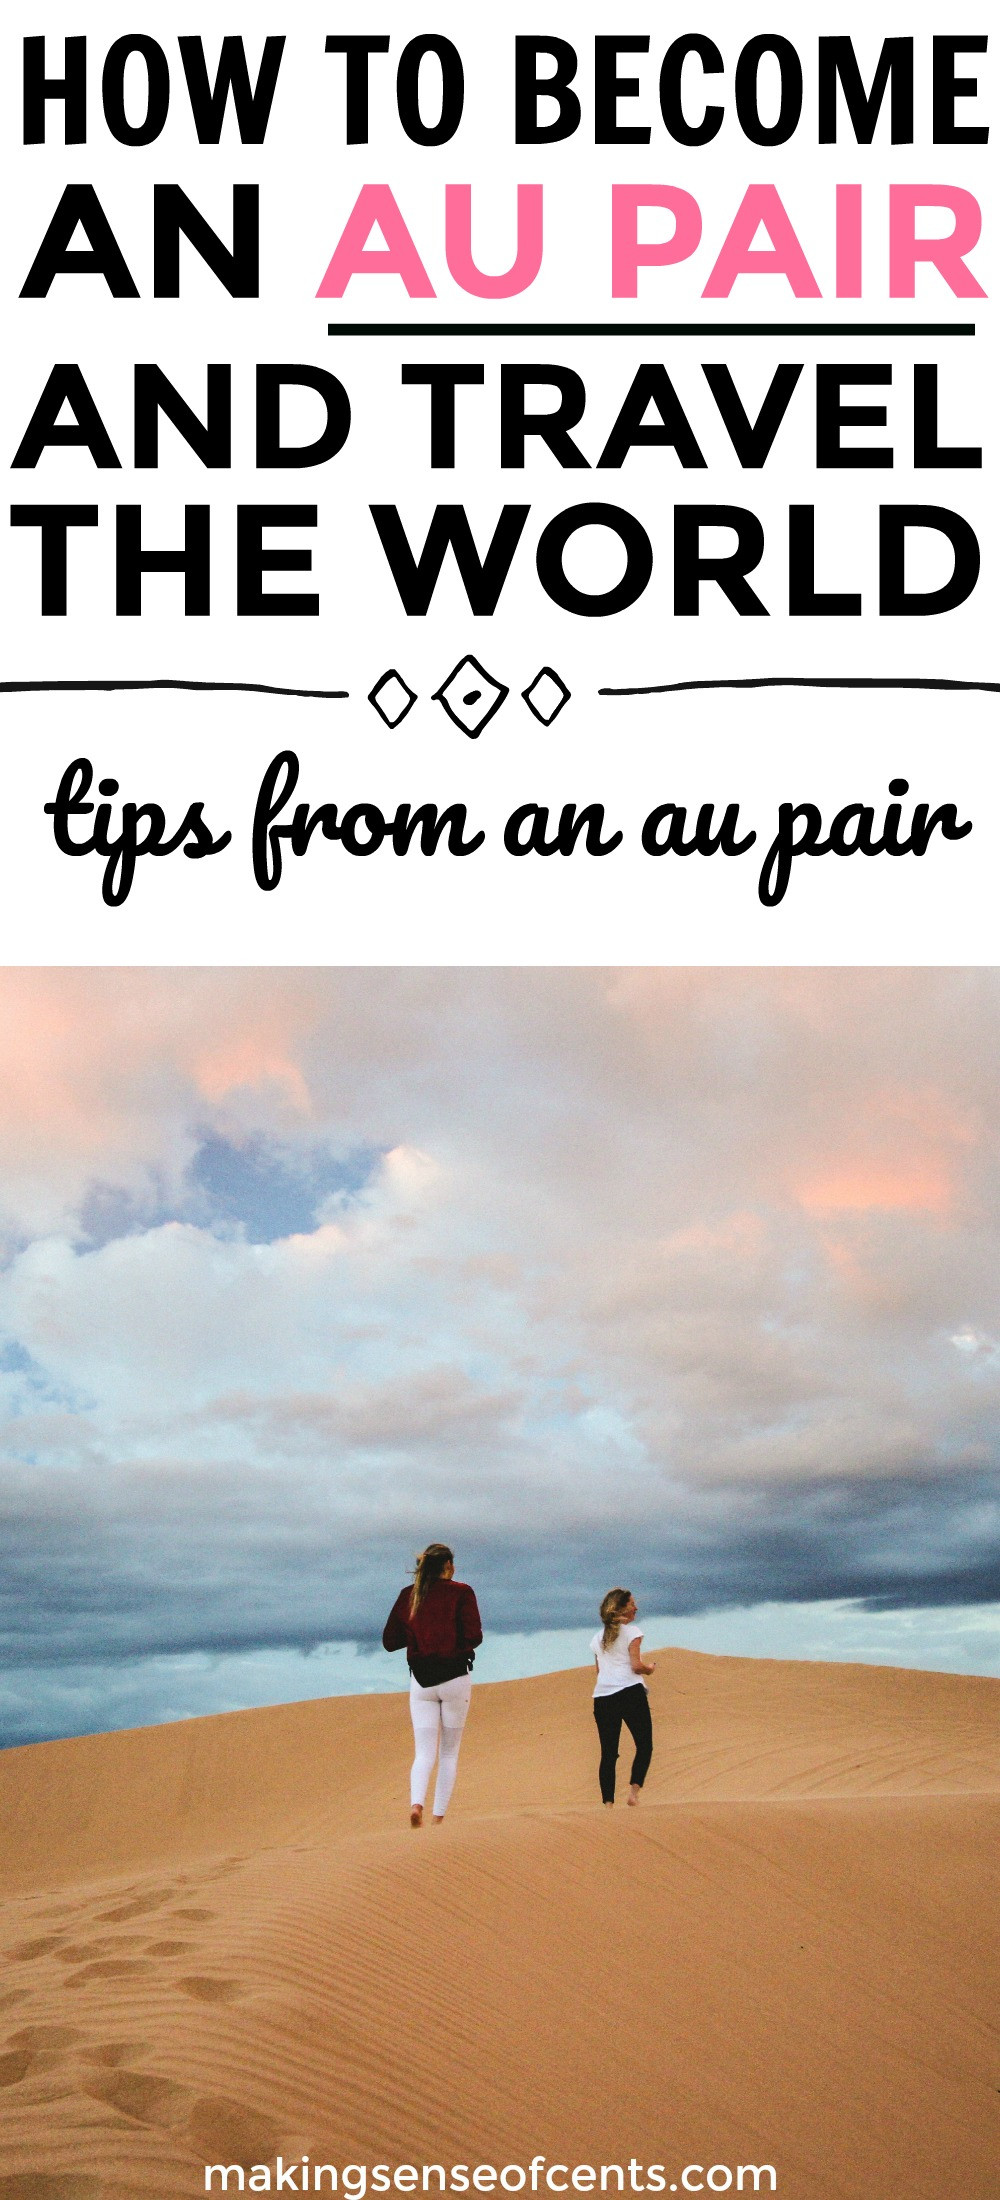 Find out how to become an au pair with tips from a real au pair! #aupair #travelabroad